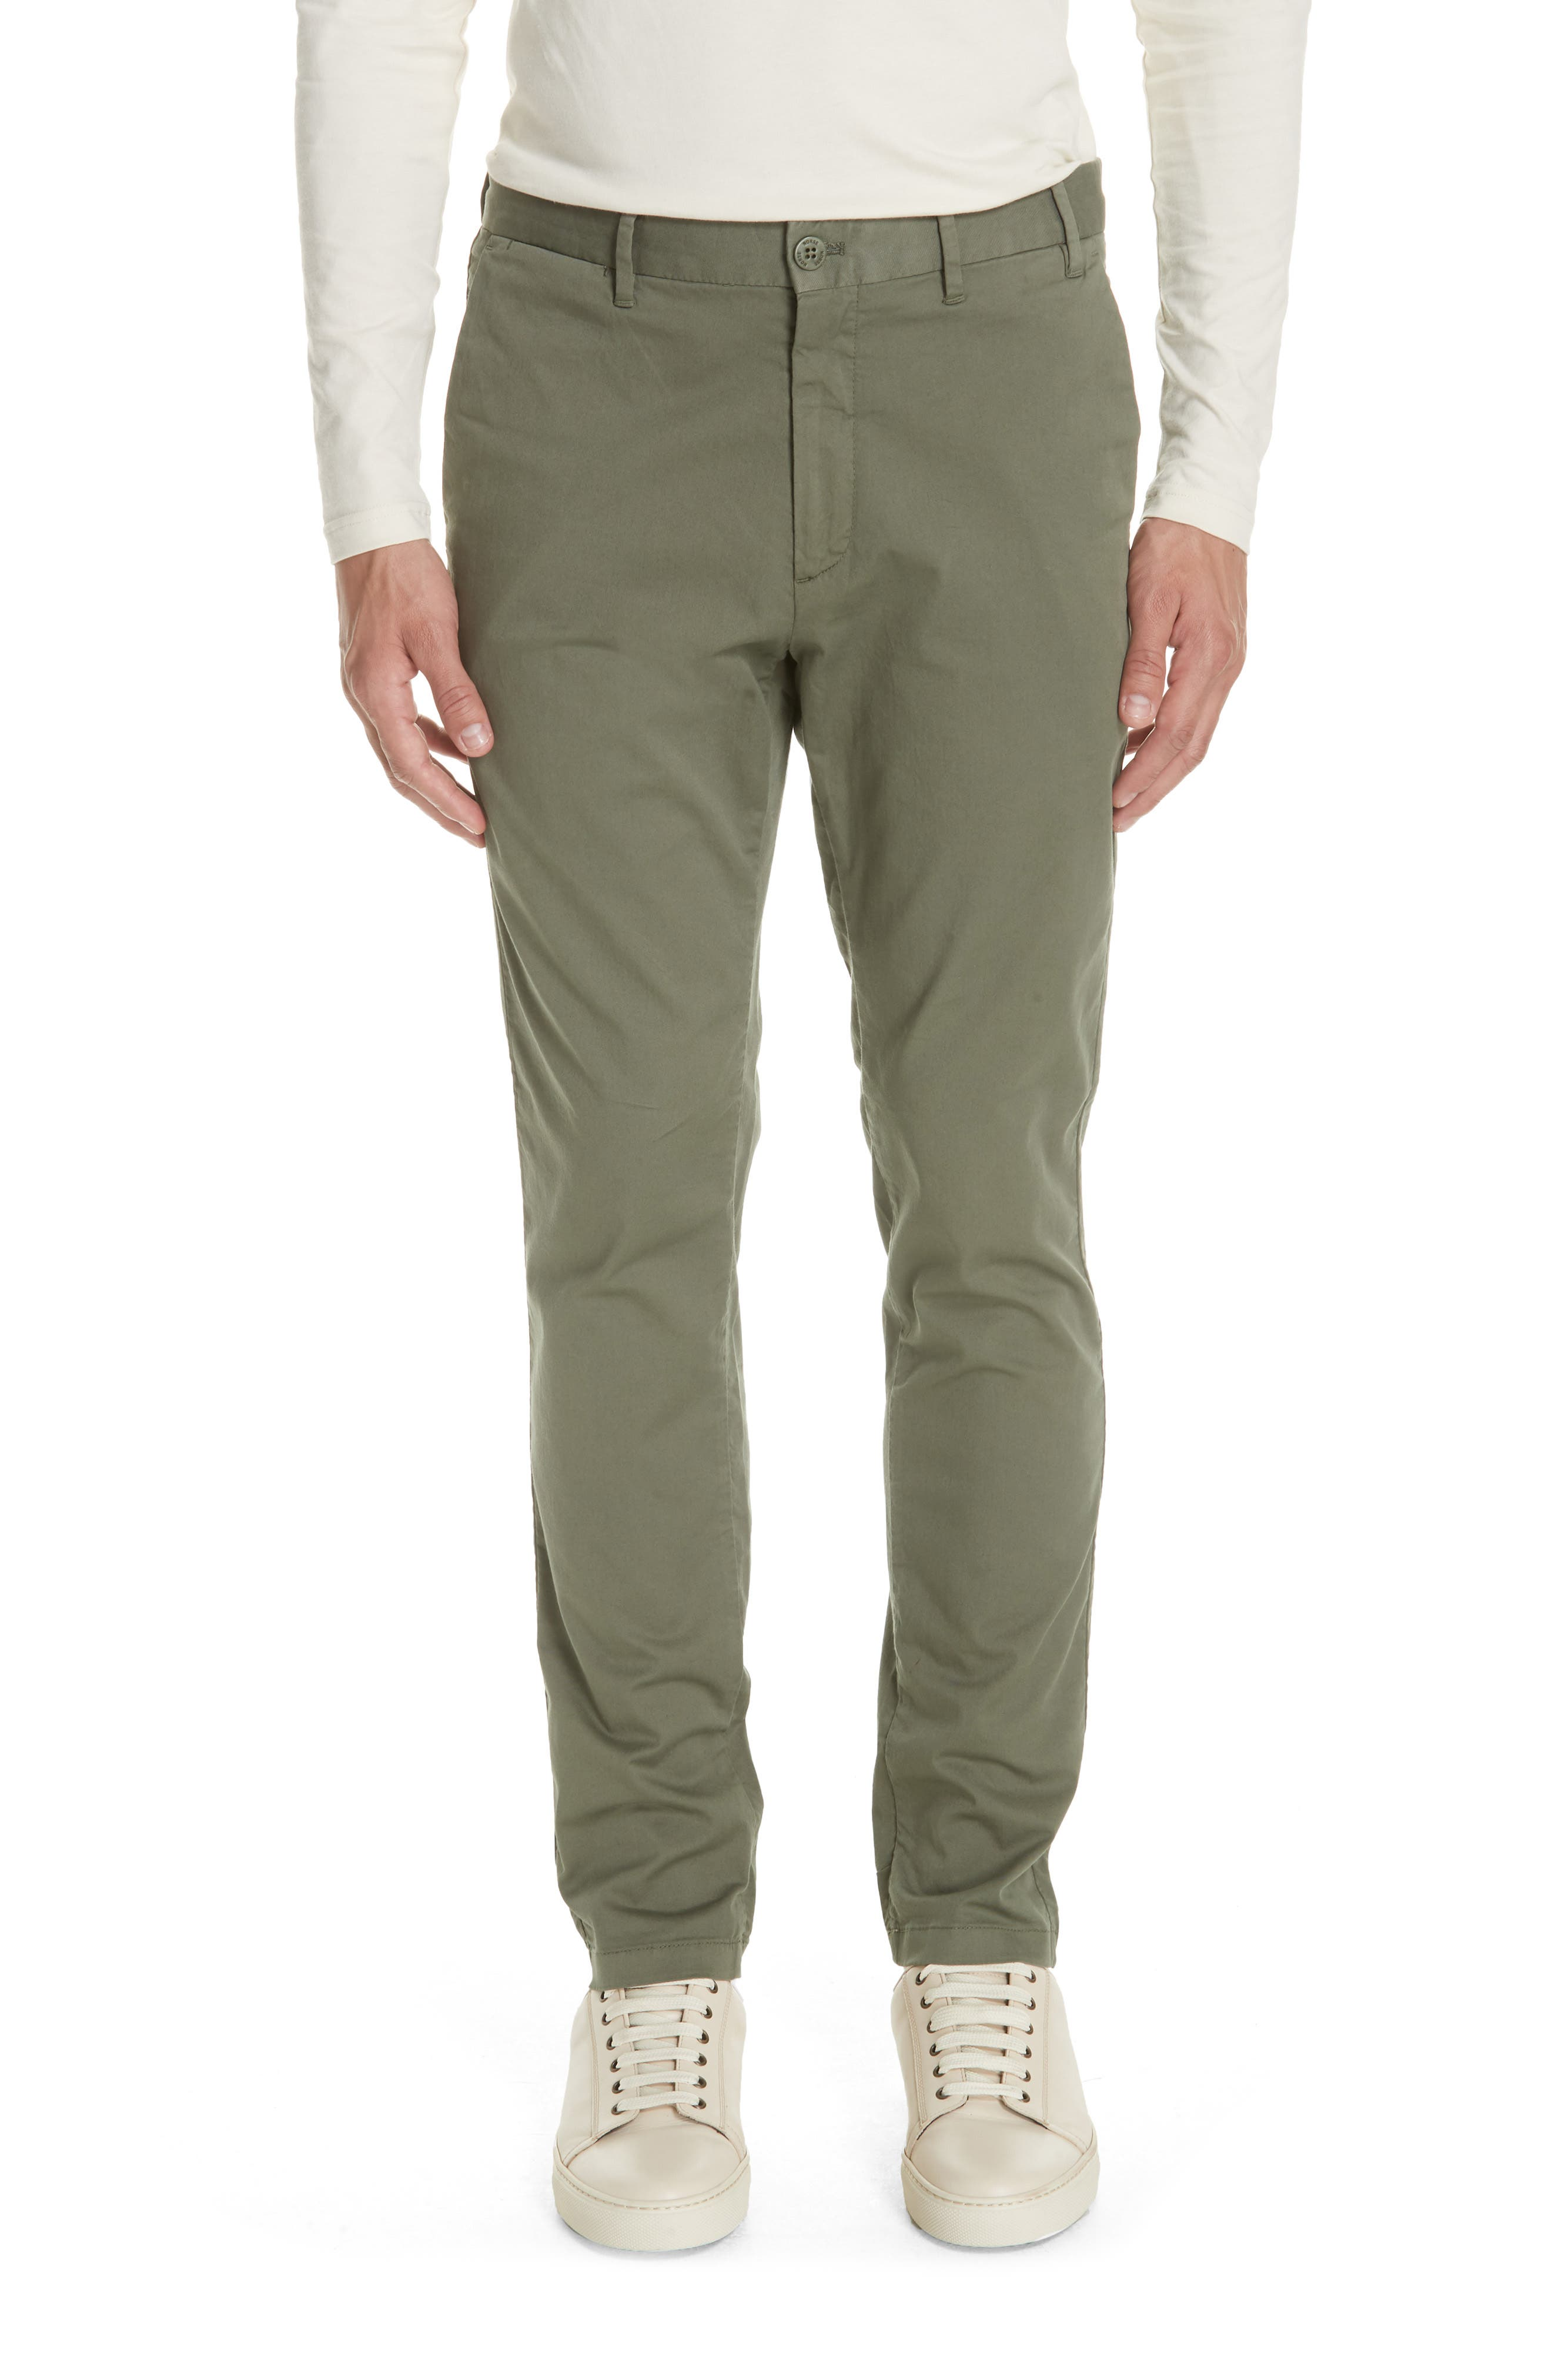 Aros Slim Fit Stretch Twill Pants,                             Main thumbnail 1, color,                             Dried Olive